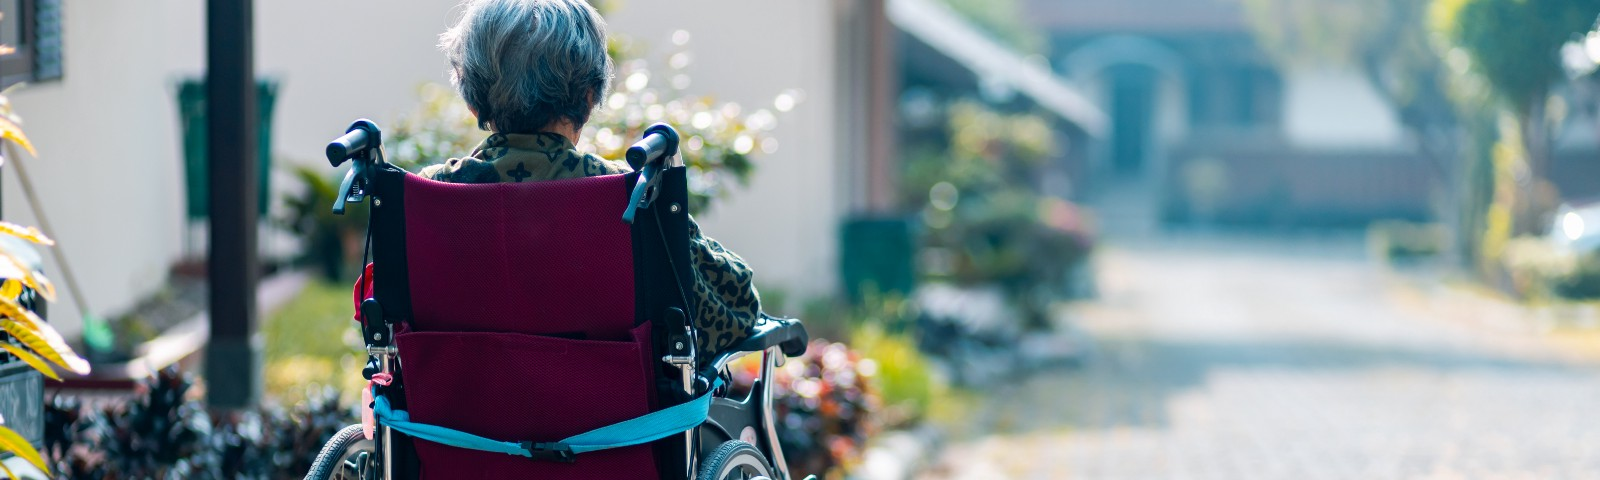 Older female adult in a wheelchair sitting outside all alone.